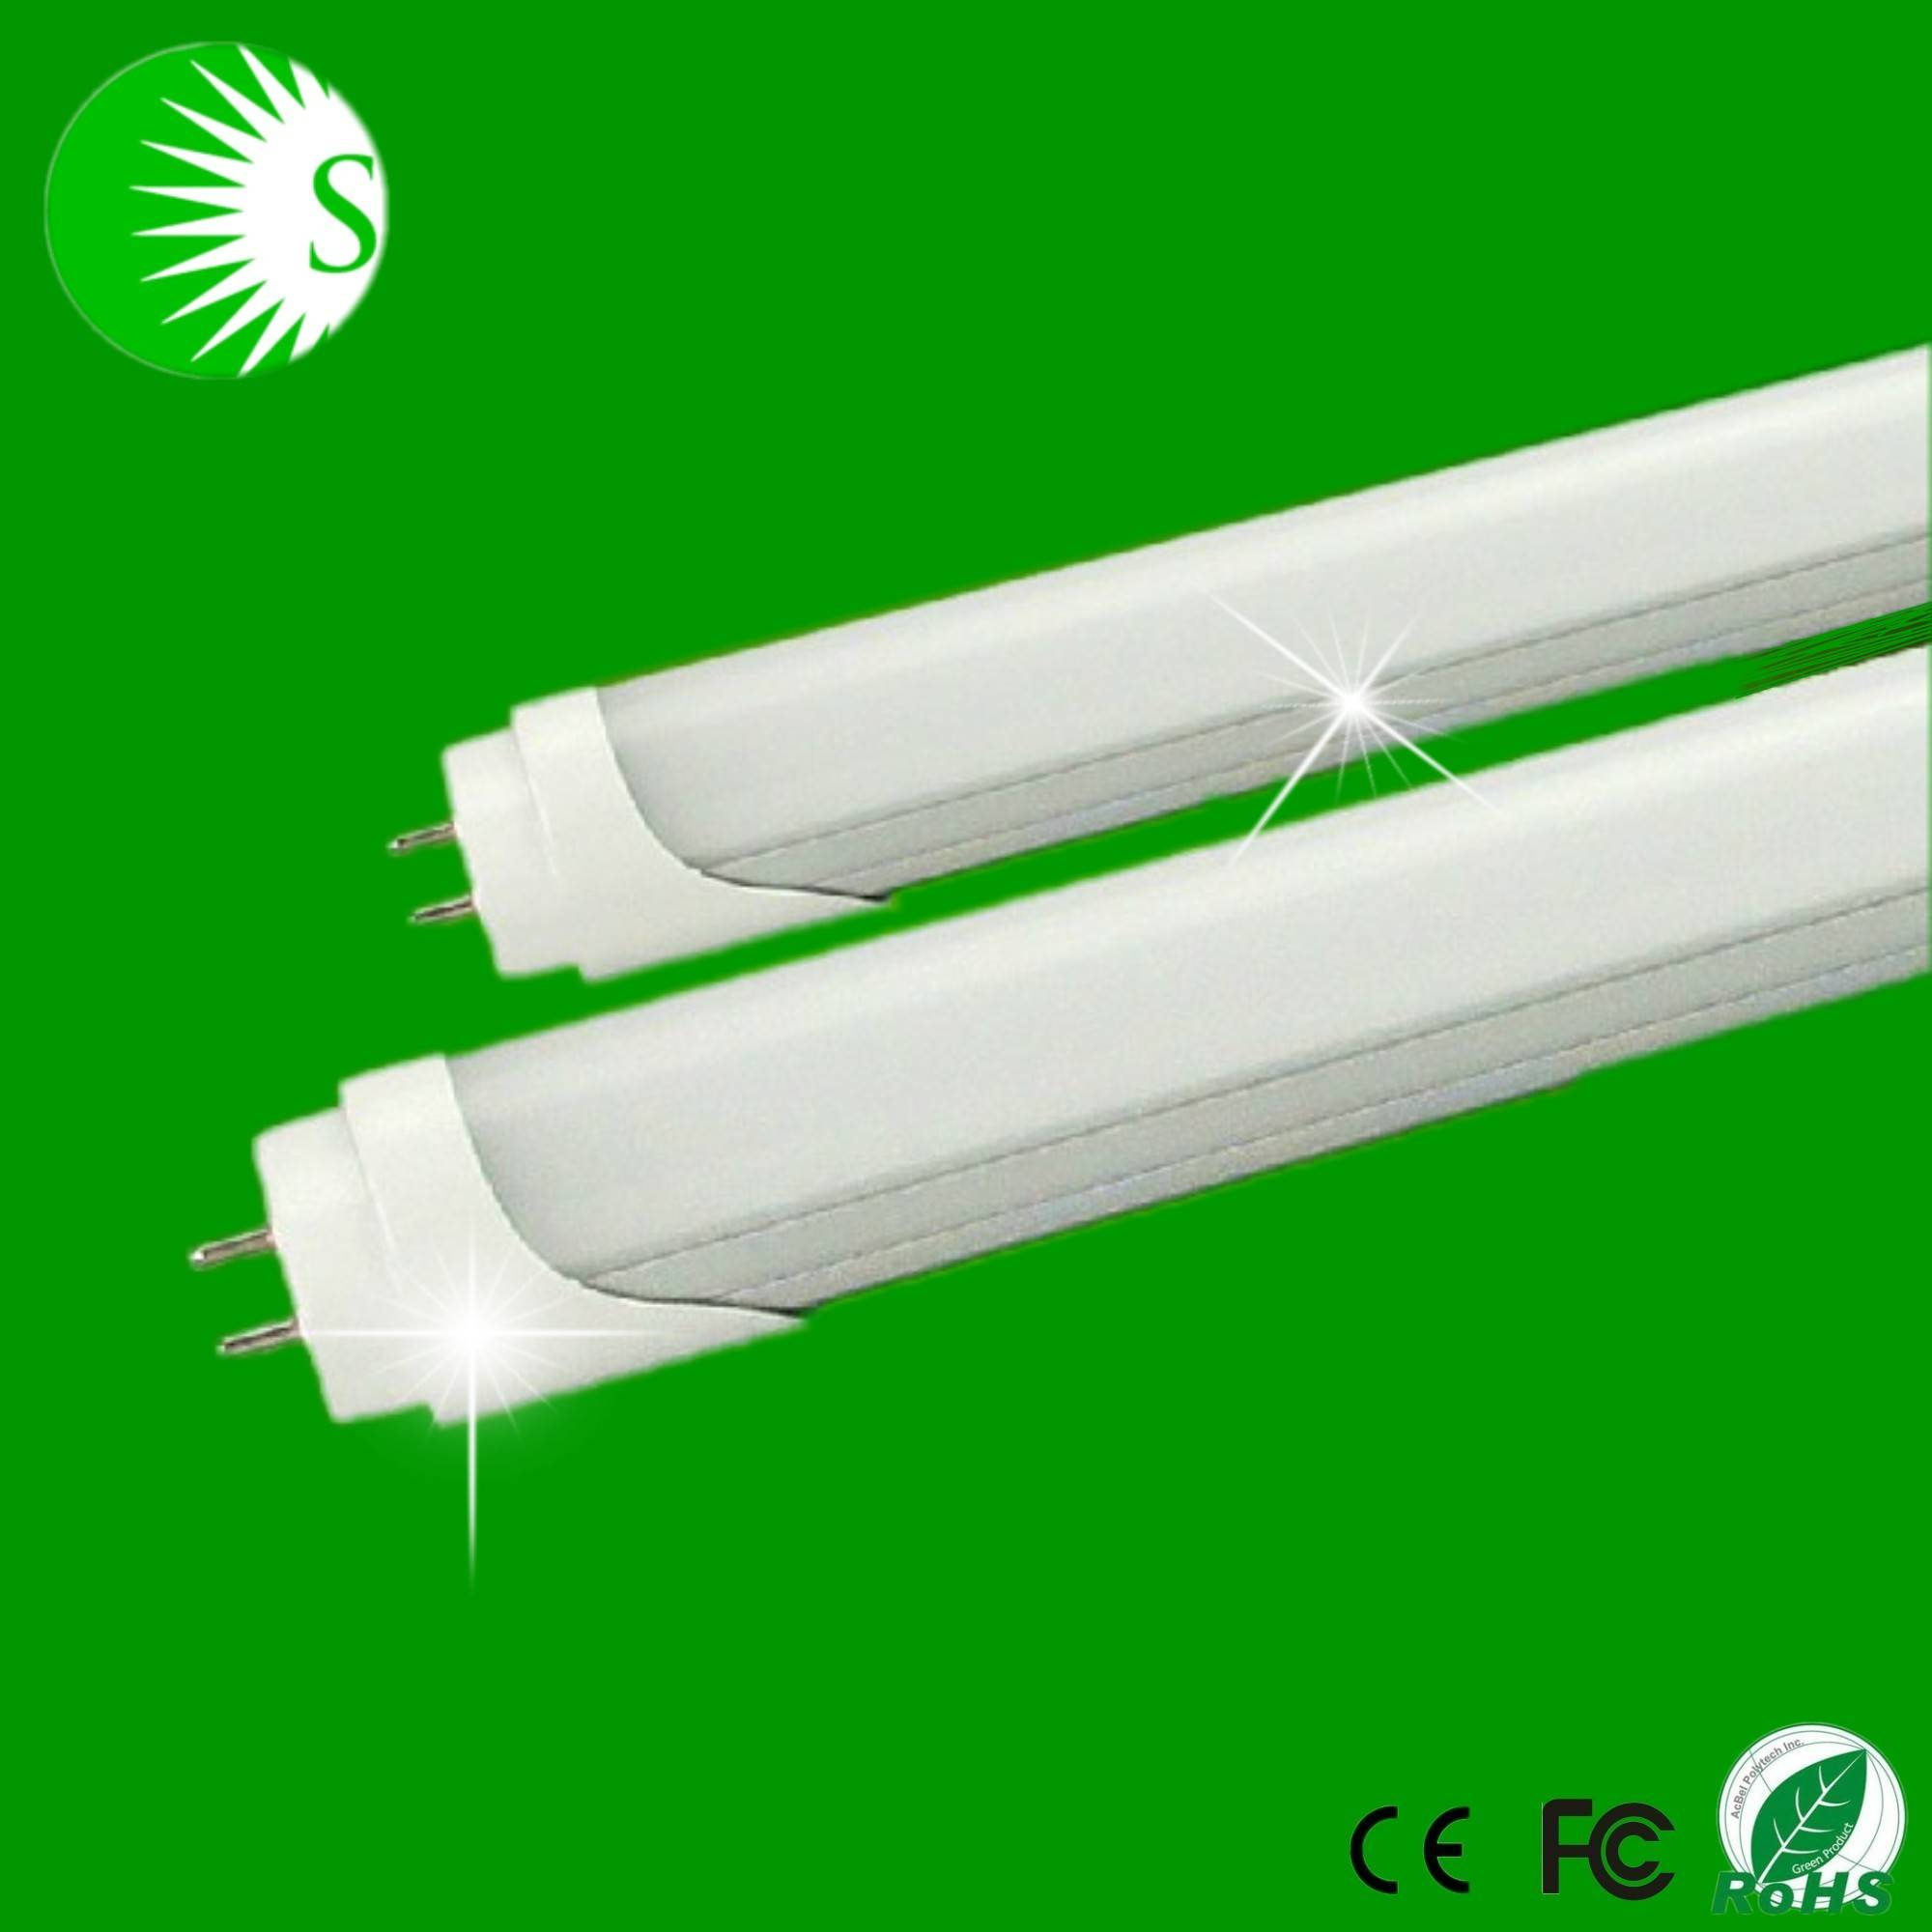 0.6m 0.9m 1.2m 1.5m tube light wide voltage AC85-265V CRI80 Epister led SMD2835 2013 new hot sale le